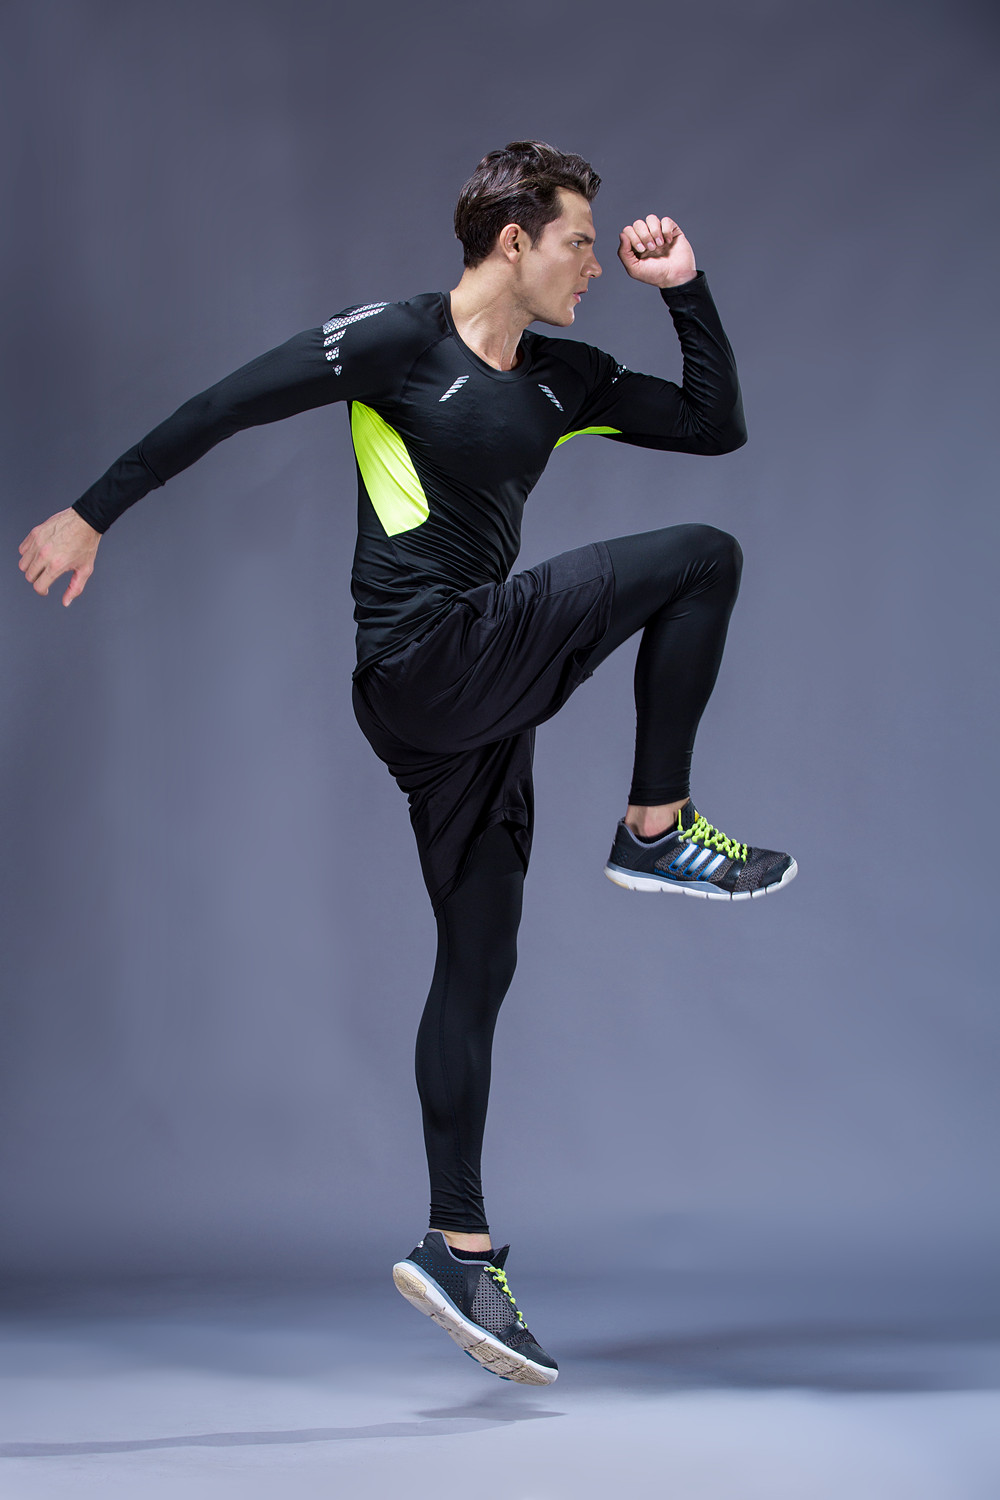 Foto1 from the left on the men 5 pcs compressions clothes for gym. Men's 5 pcs compression tracksuit sports